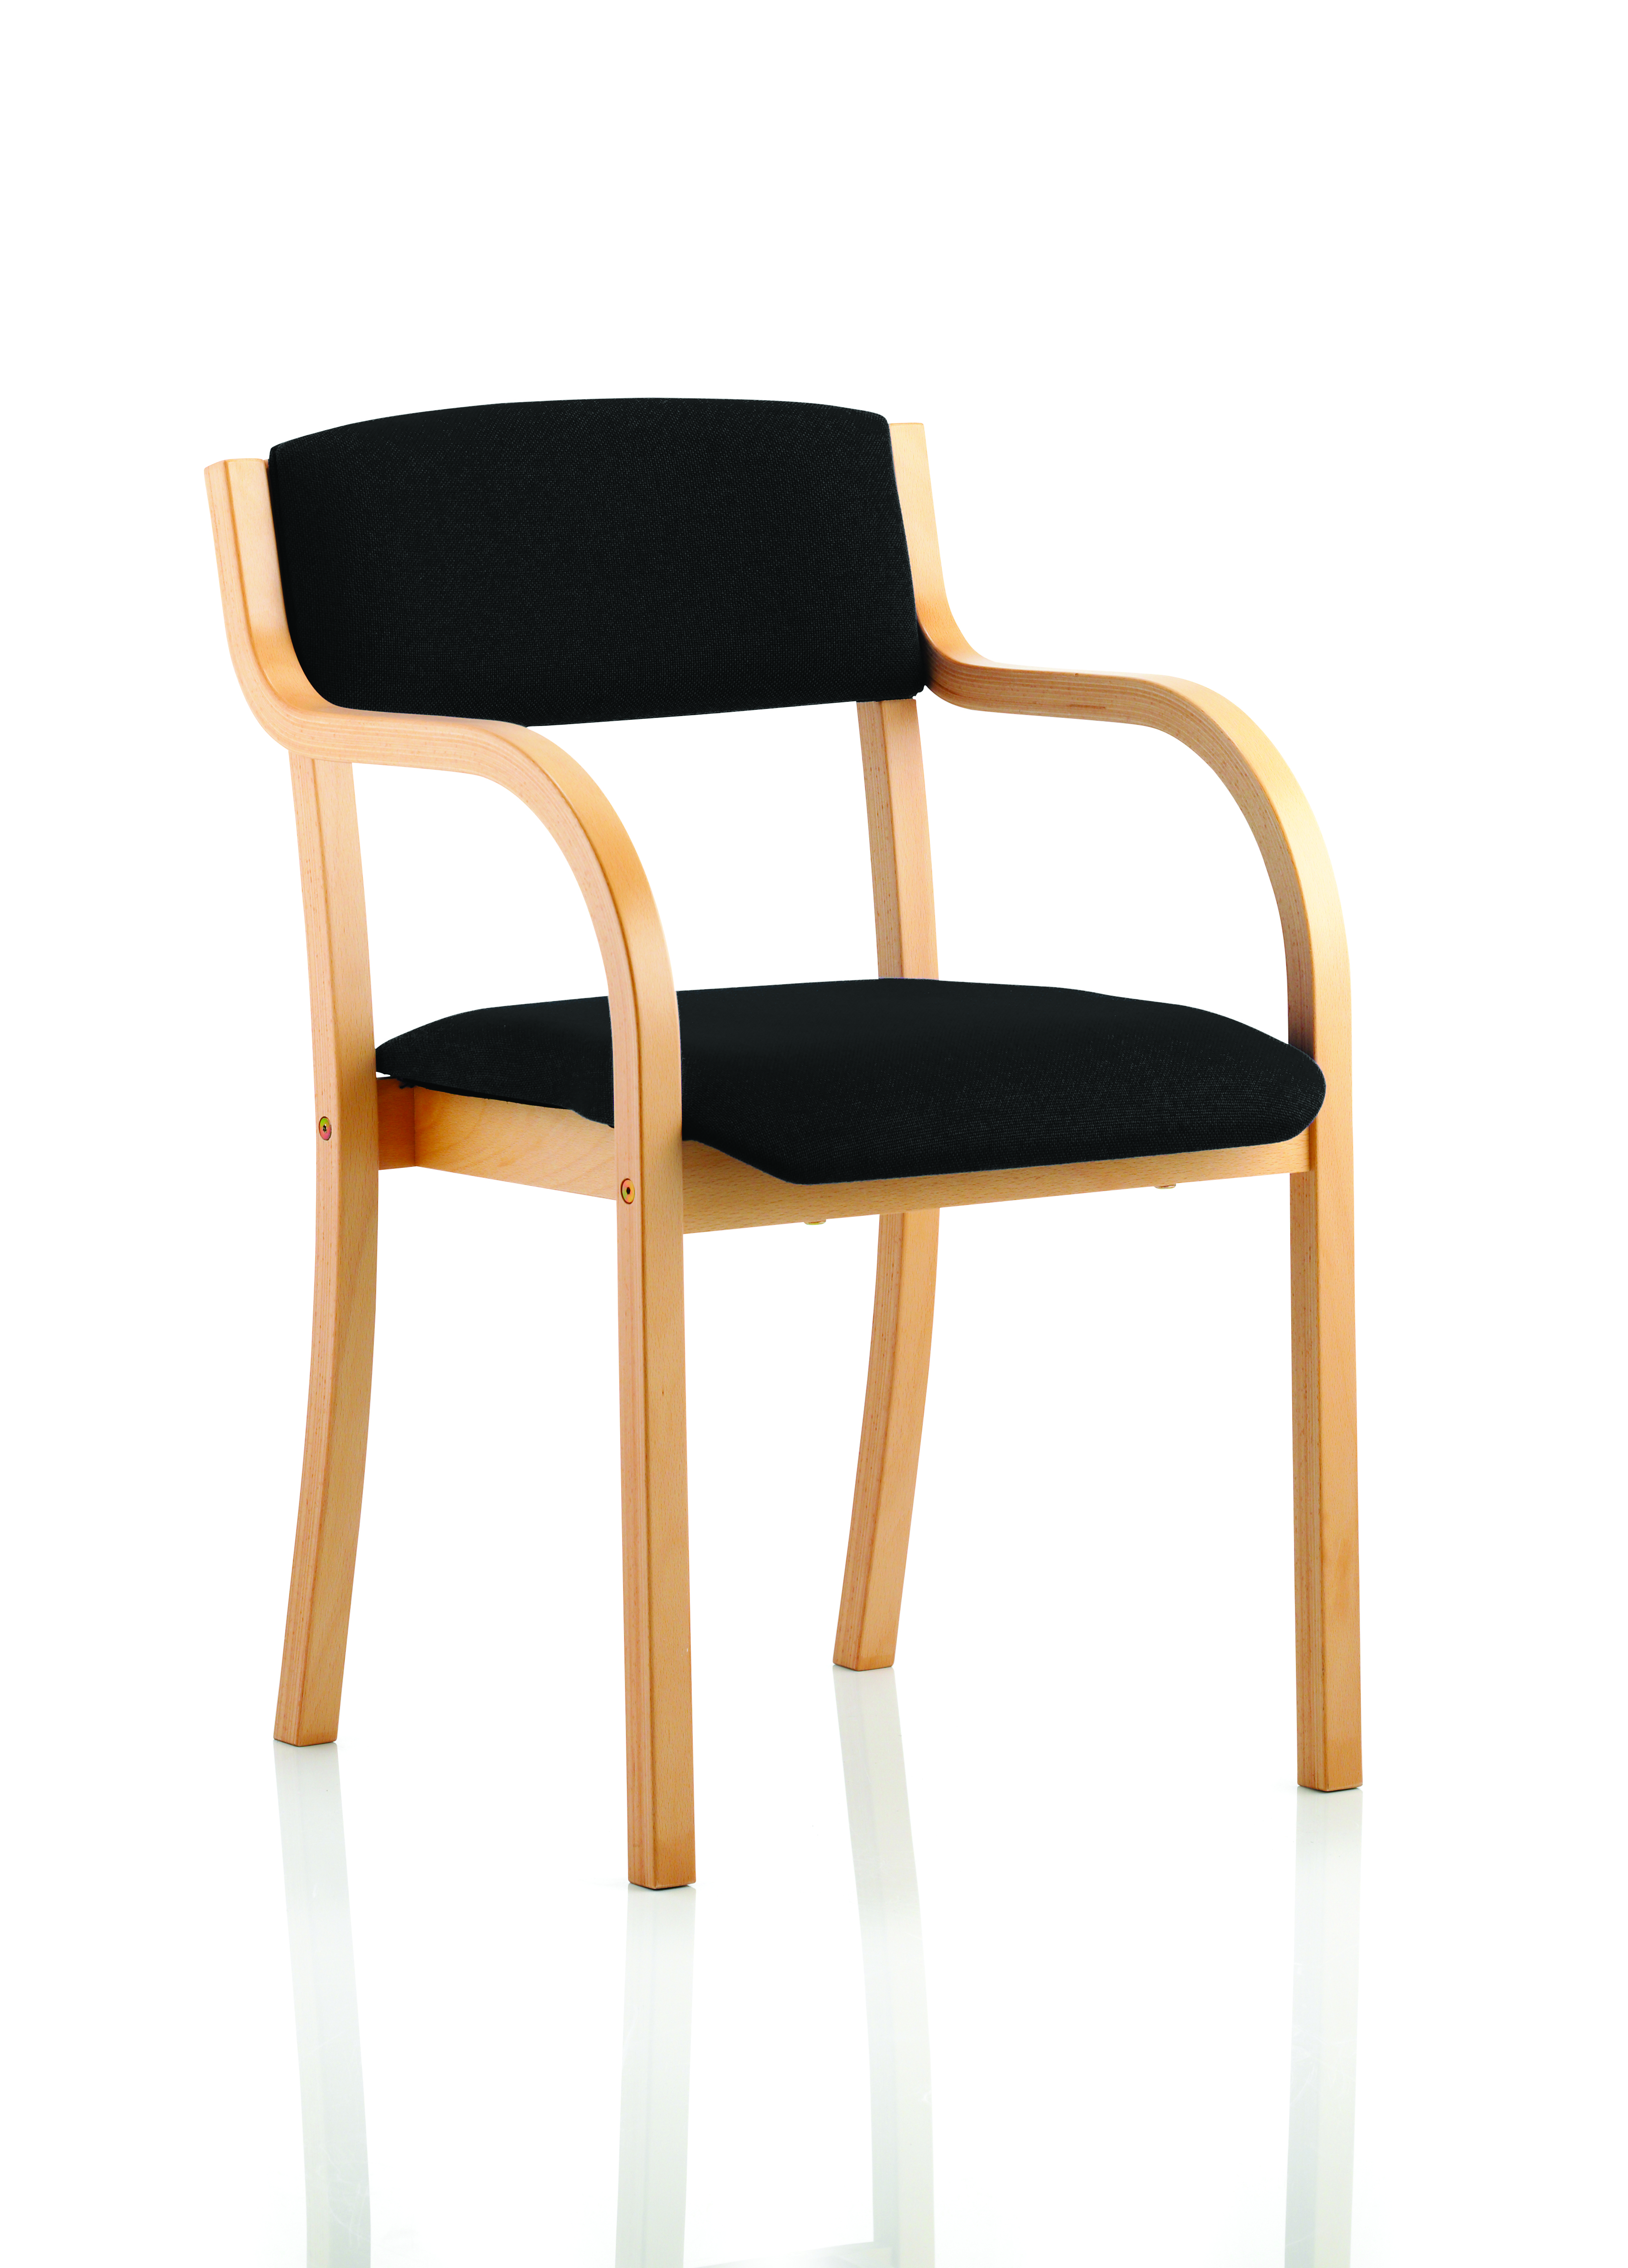 Stacking Chairs Madrid Visitor Chair Black With Arms BR000084